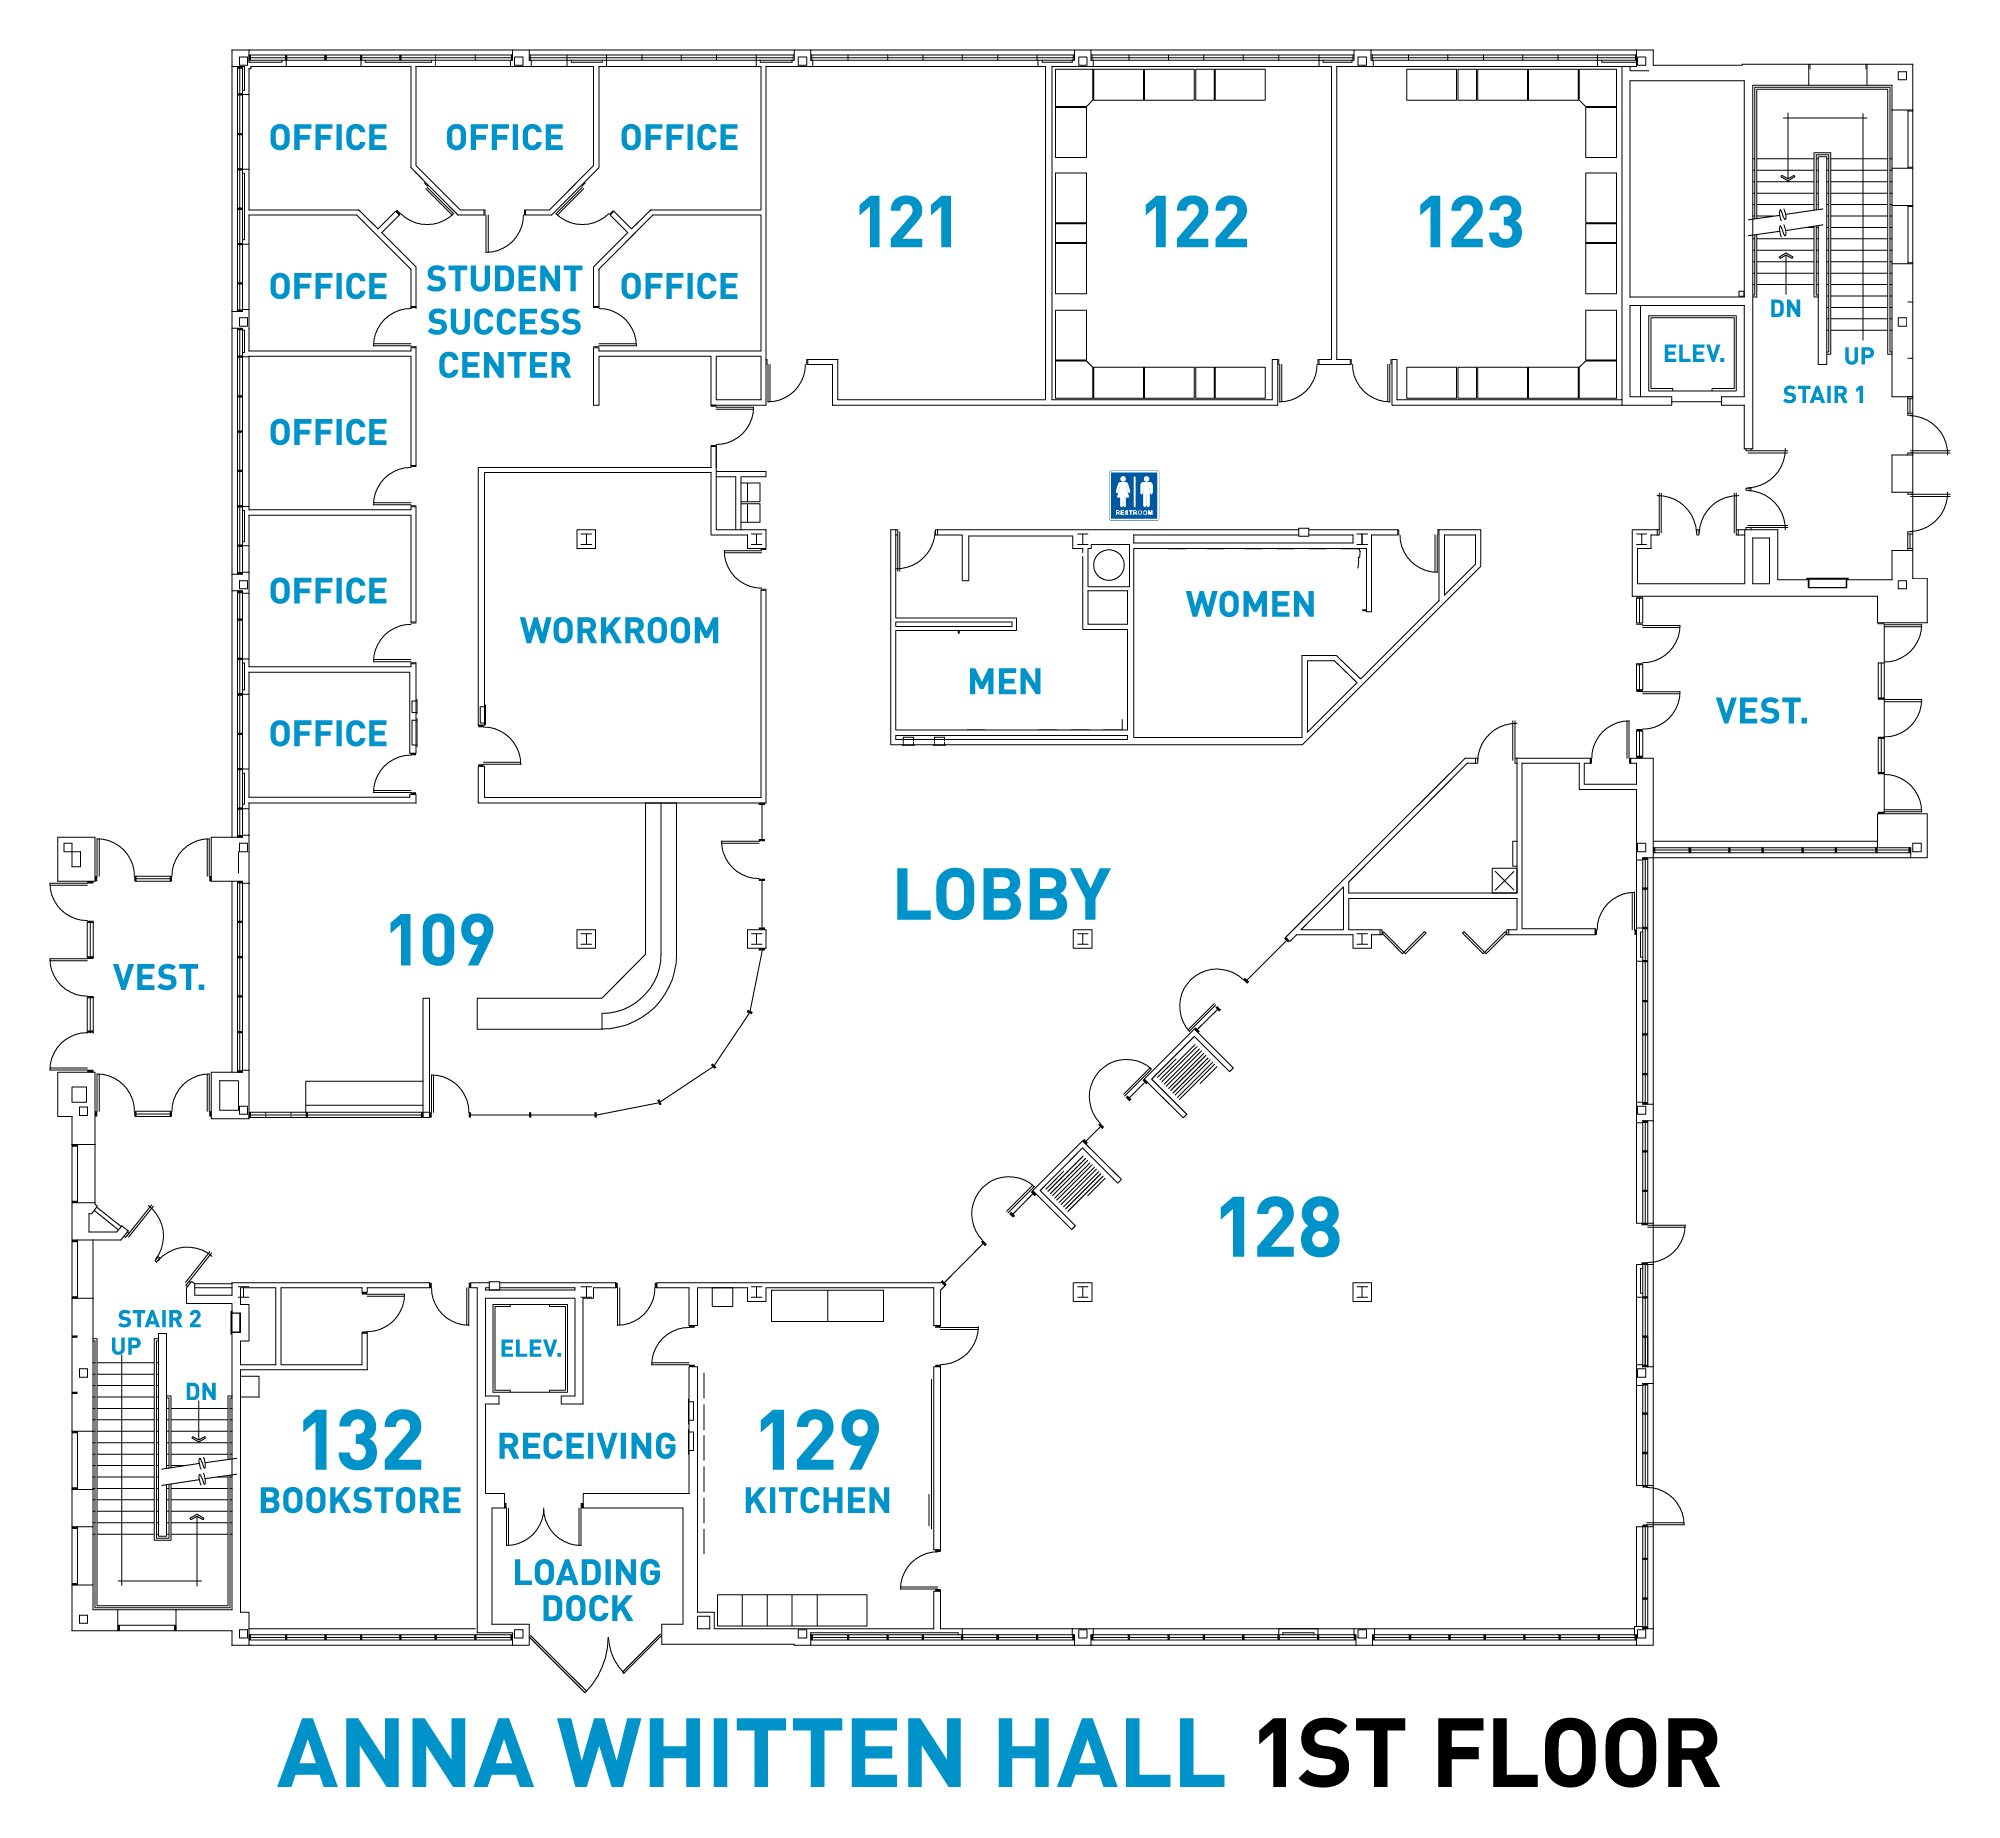 Anna Whitten Hall Map - Kalamazoo Valley Community College on uw-l campus map, ucd campus map, niagara county community college campus map, grcc campus map, rctc campus map, lcsc campus map, umf campus map, emcc campus map, jcjc campus map, flcc campus map, cmcc campus map, clayton state university campus map, del mar college campus map, nmcc campus map, wmu campus map, taft college campus map, fvcc campus map, csuci campus map, rvcc campus map, vernon college campus map,